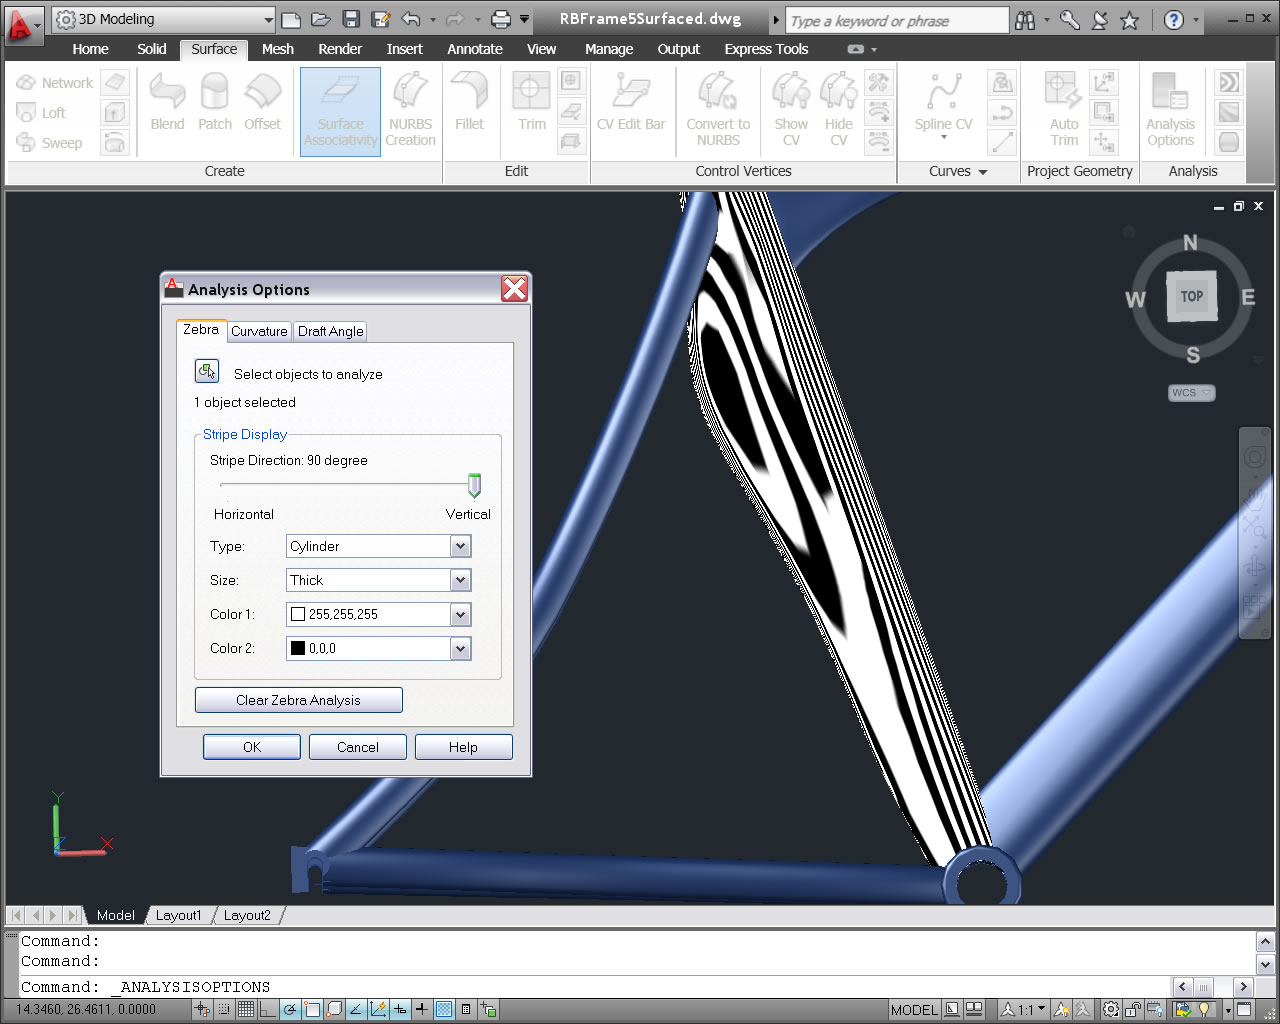 AutoCAD LT 2012 screenshot